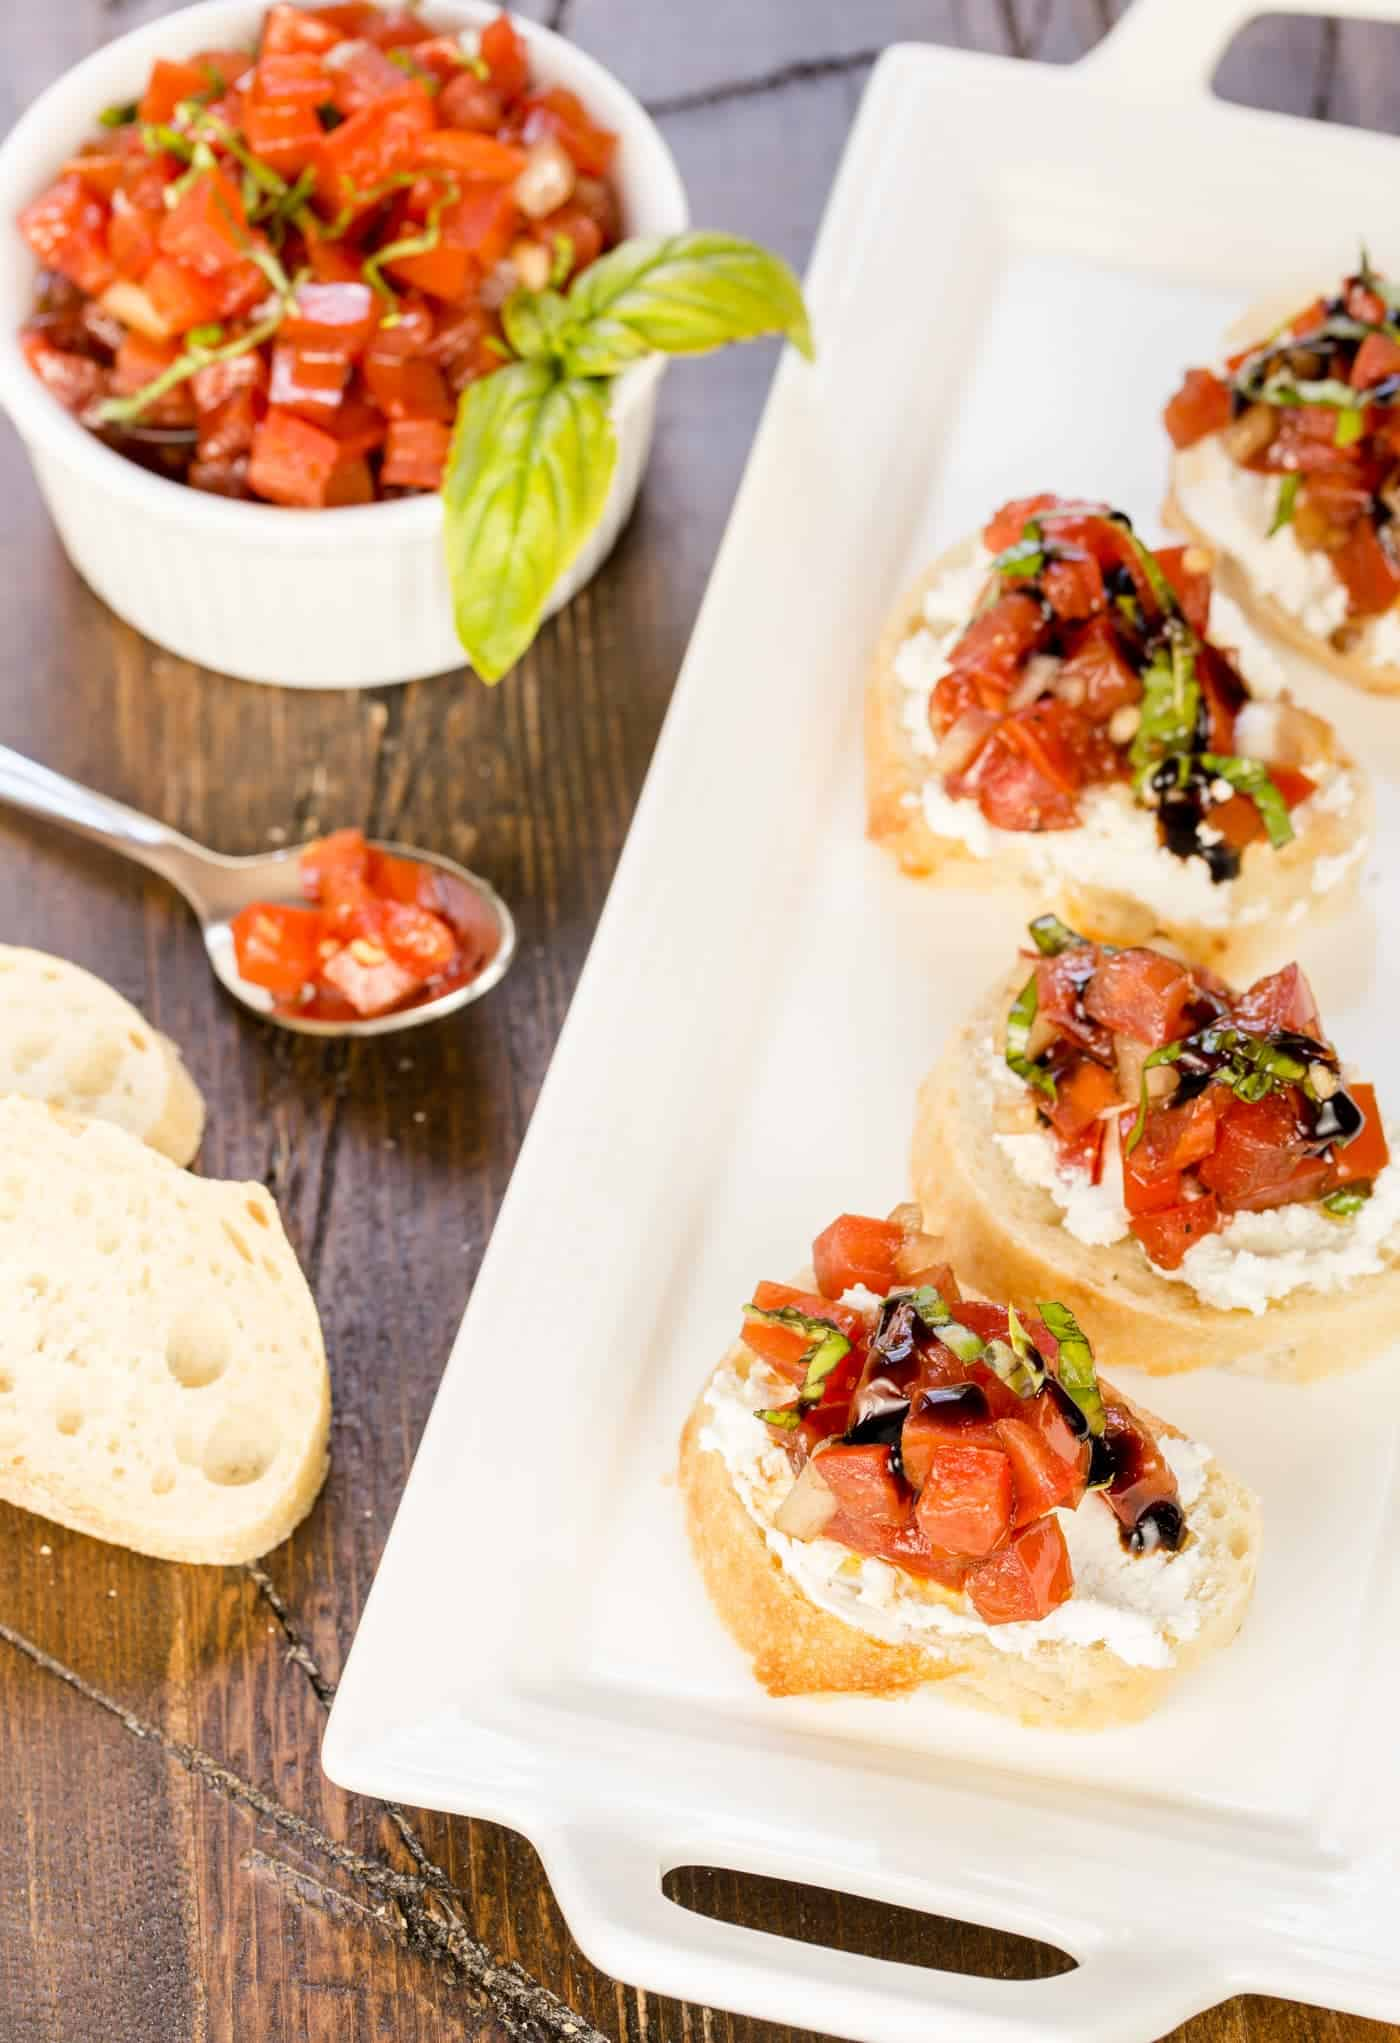 Summer appetizers don't get much easier or more delicious than this quick and easy Balsamic Bruschetta!